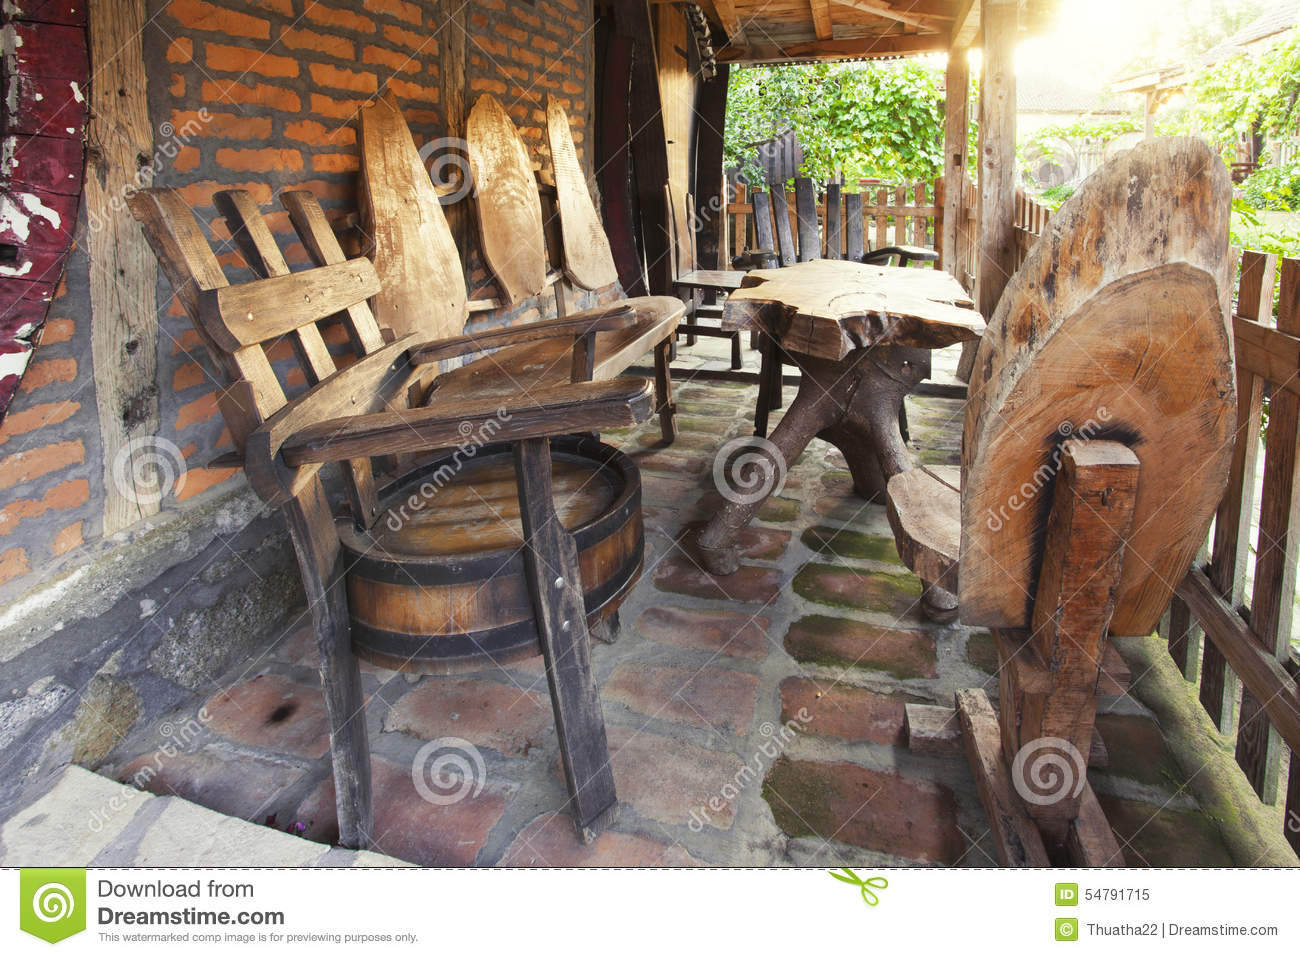 Unusual Wooden Chairs Unique Wooden Chairs And Table On Porch Stock Image